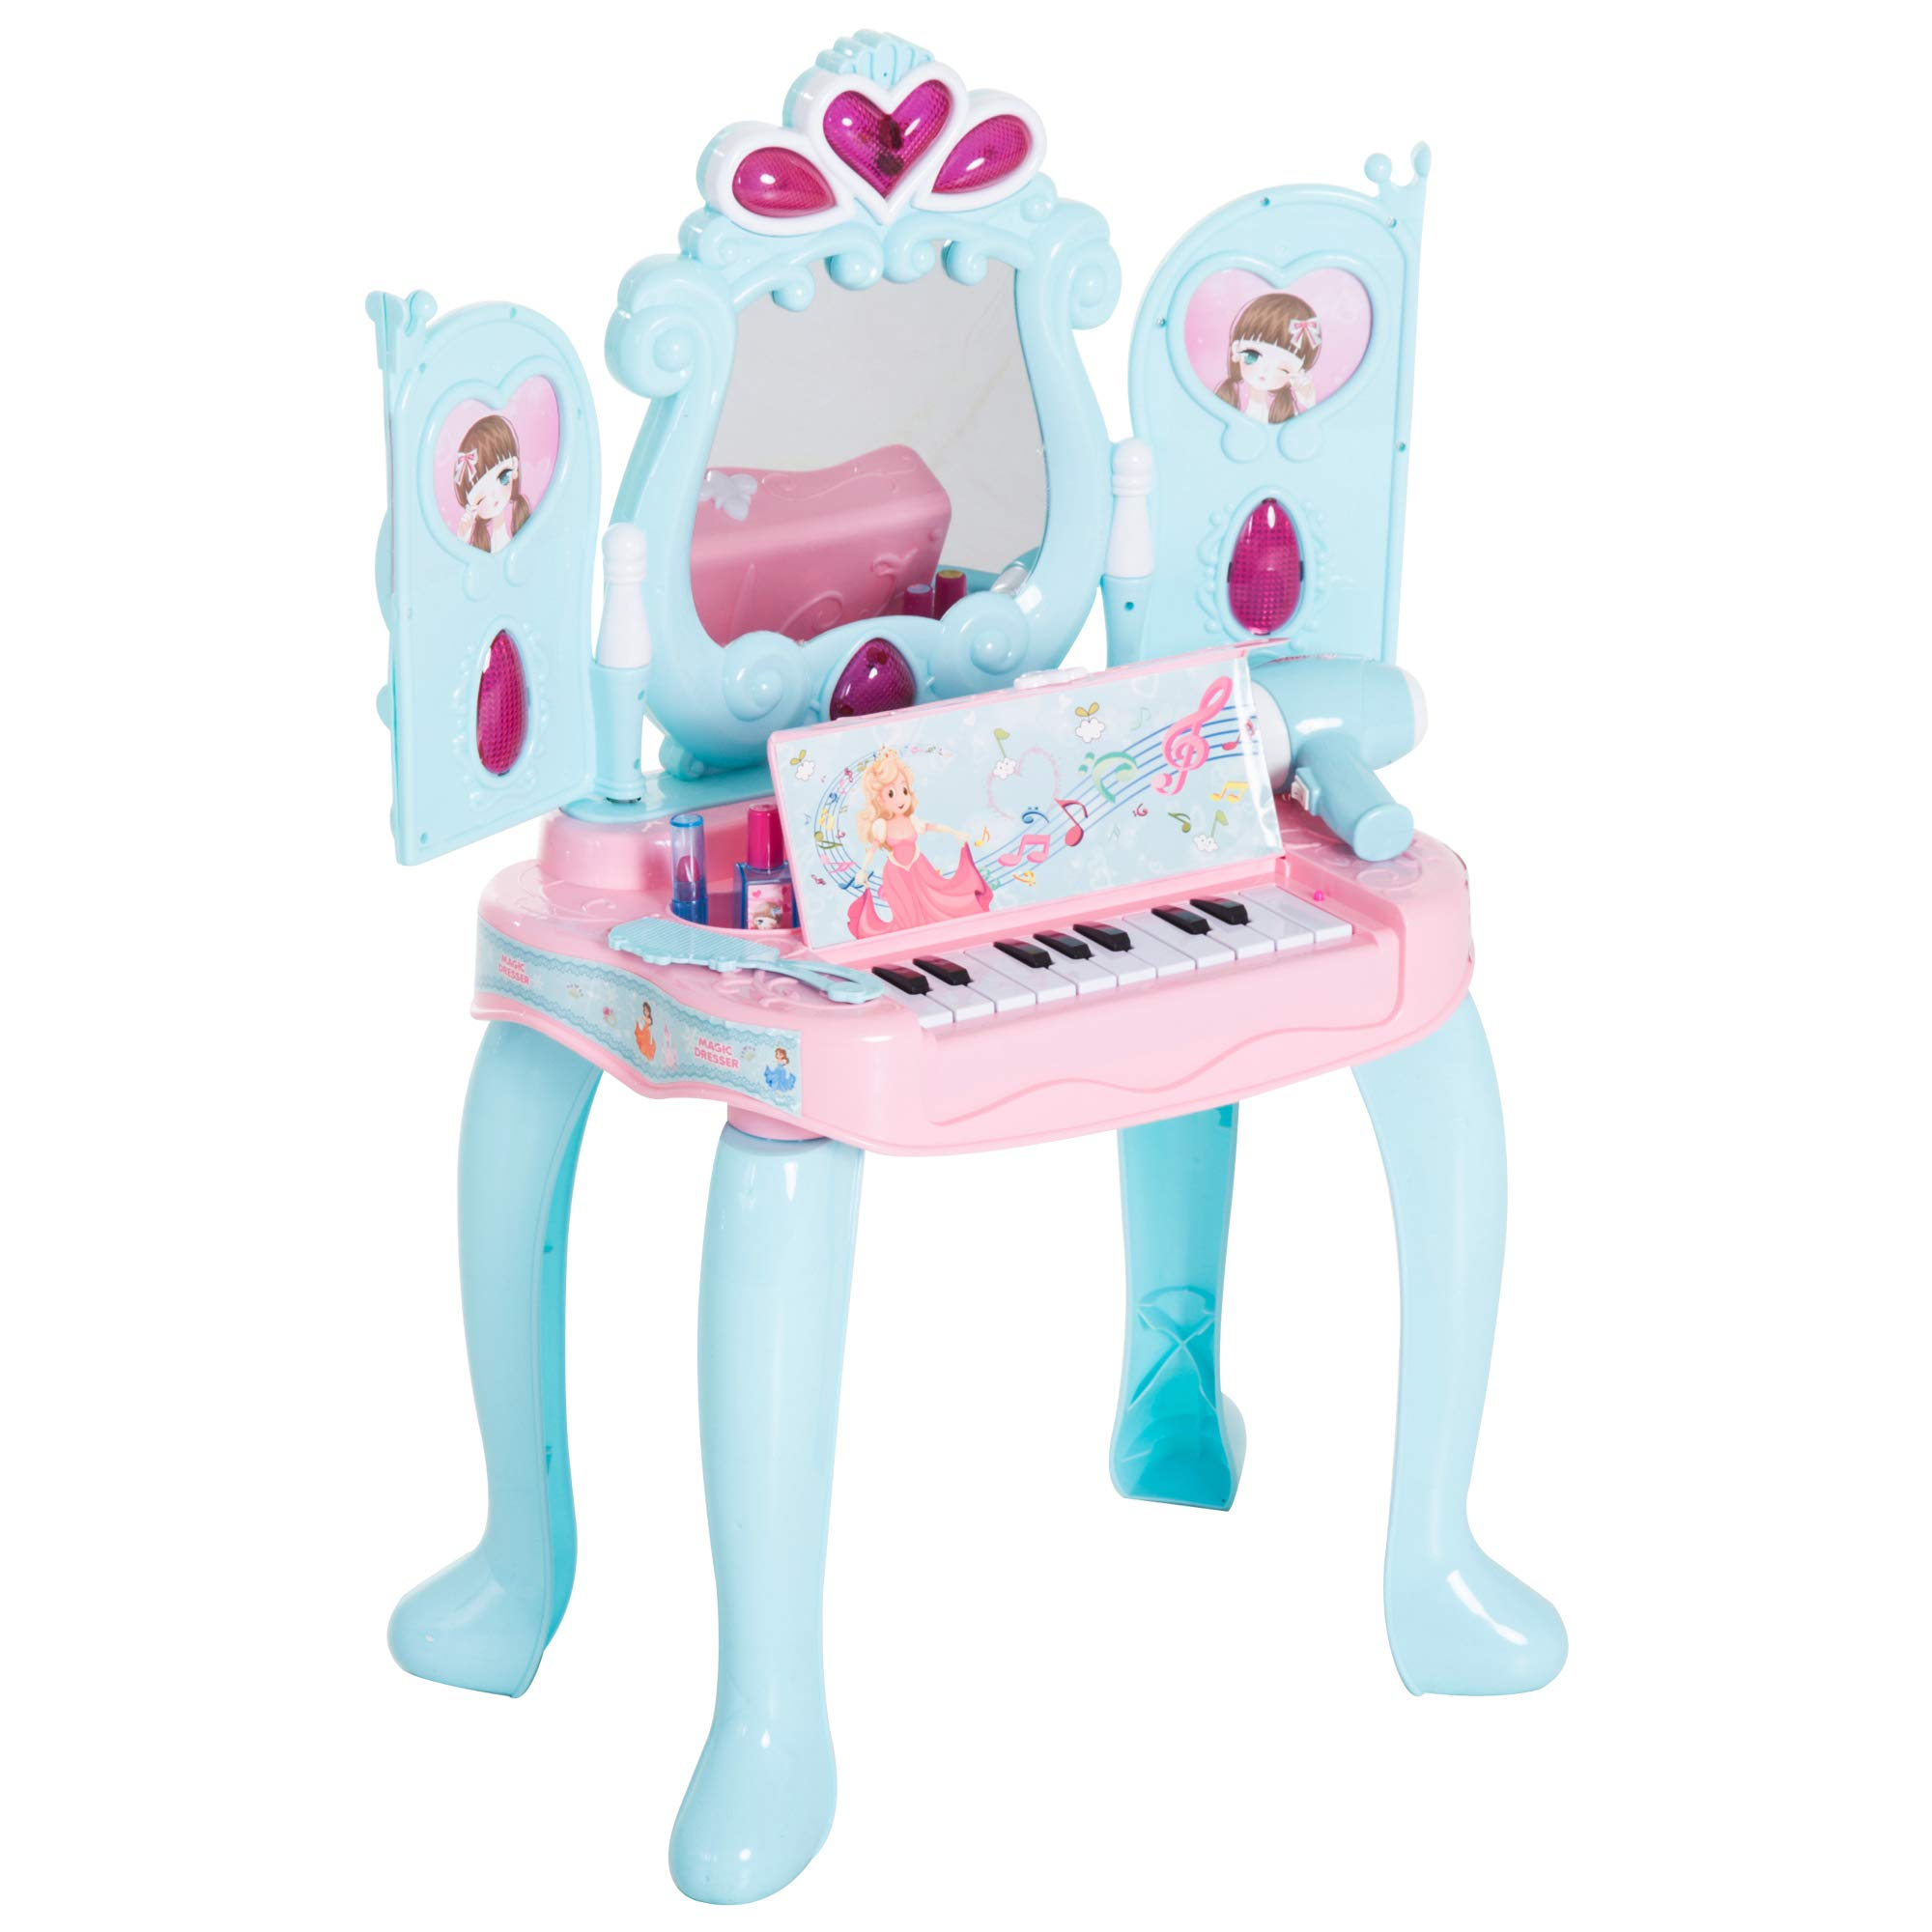 Qaba 2-in-1 Kids Pretend Play Set Piano Princess Vanity Table with Lights, Sounds, and Accessories - Light Blue/ Pink by Qaba